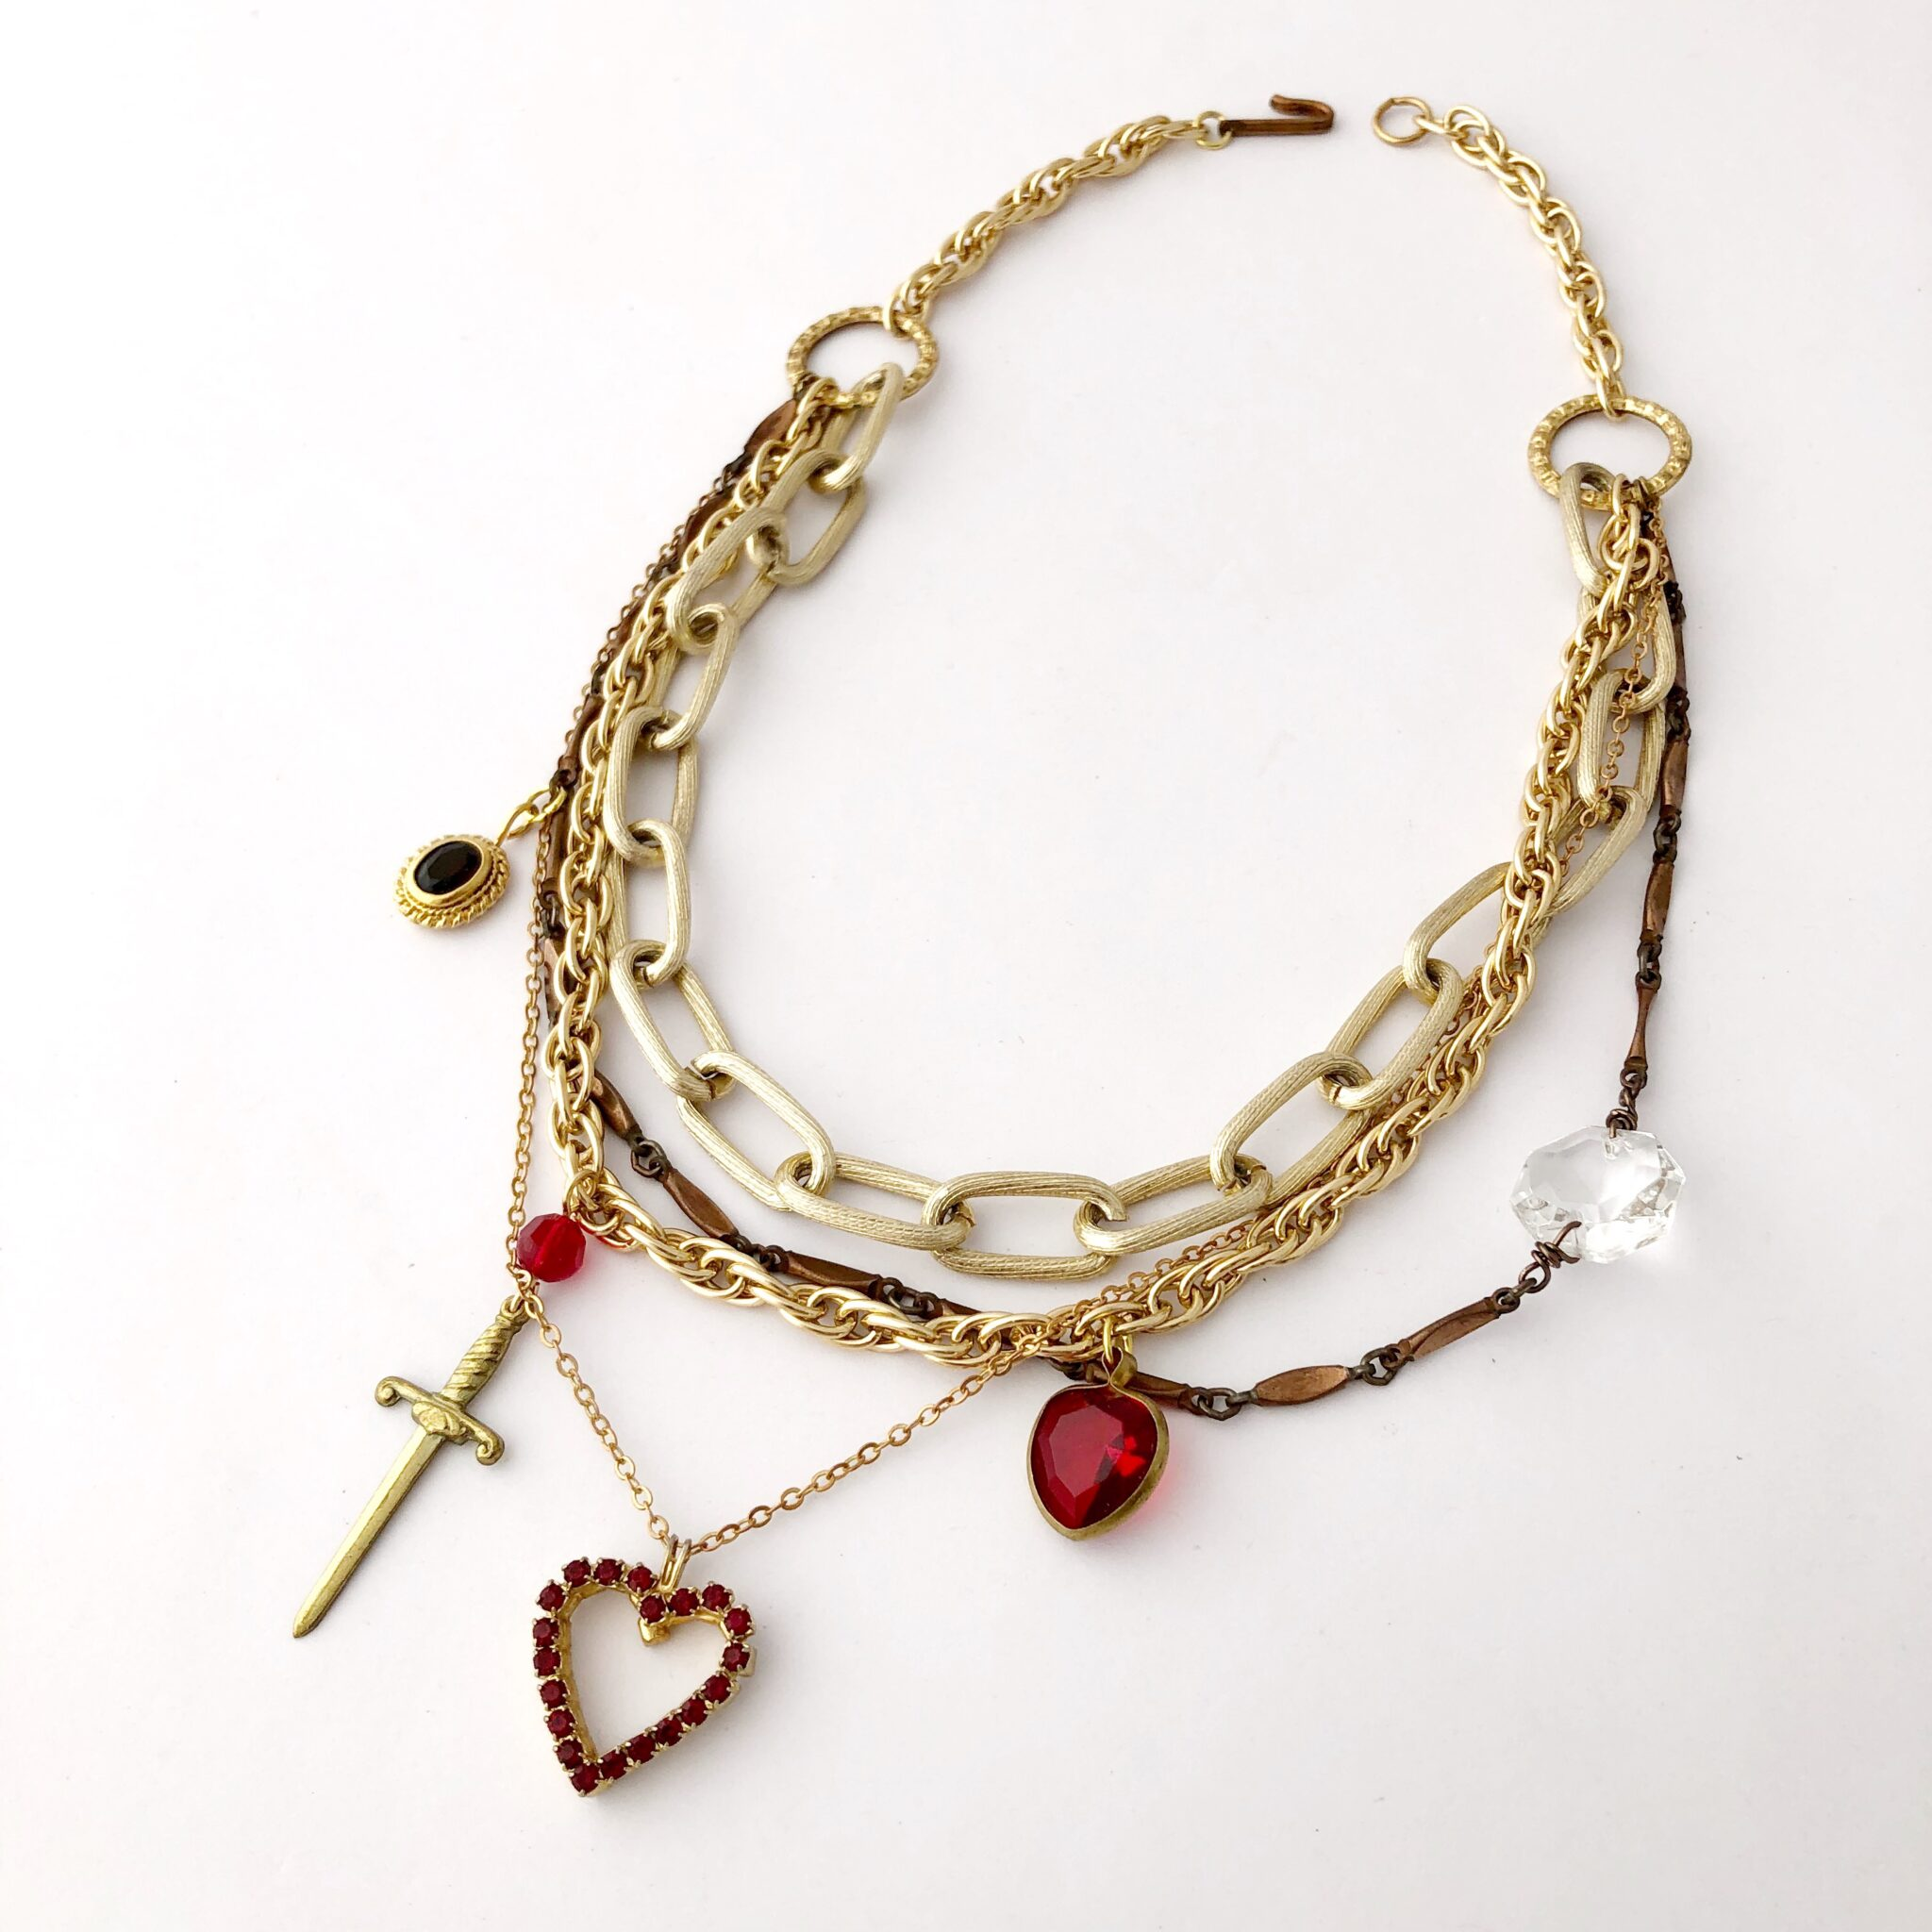 Curiosity-necklace-in-red by My Vintage Obsession